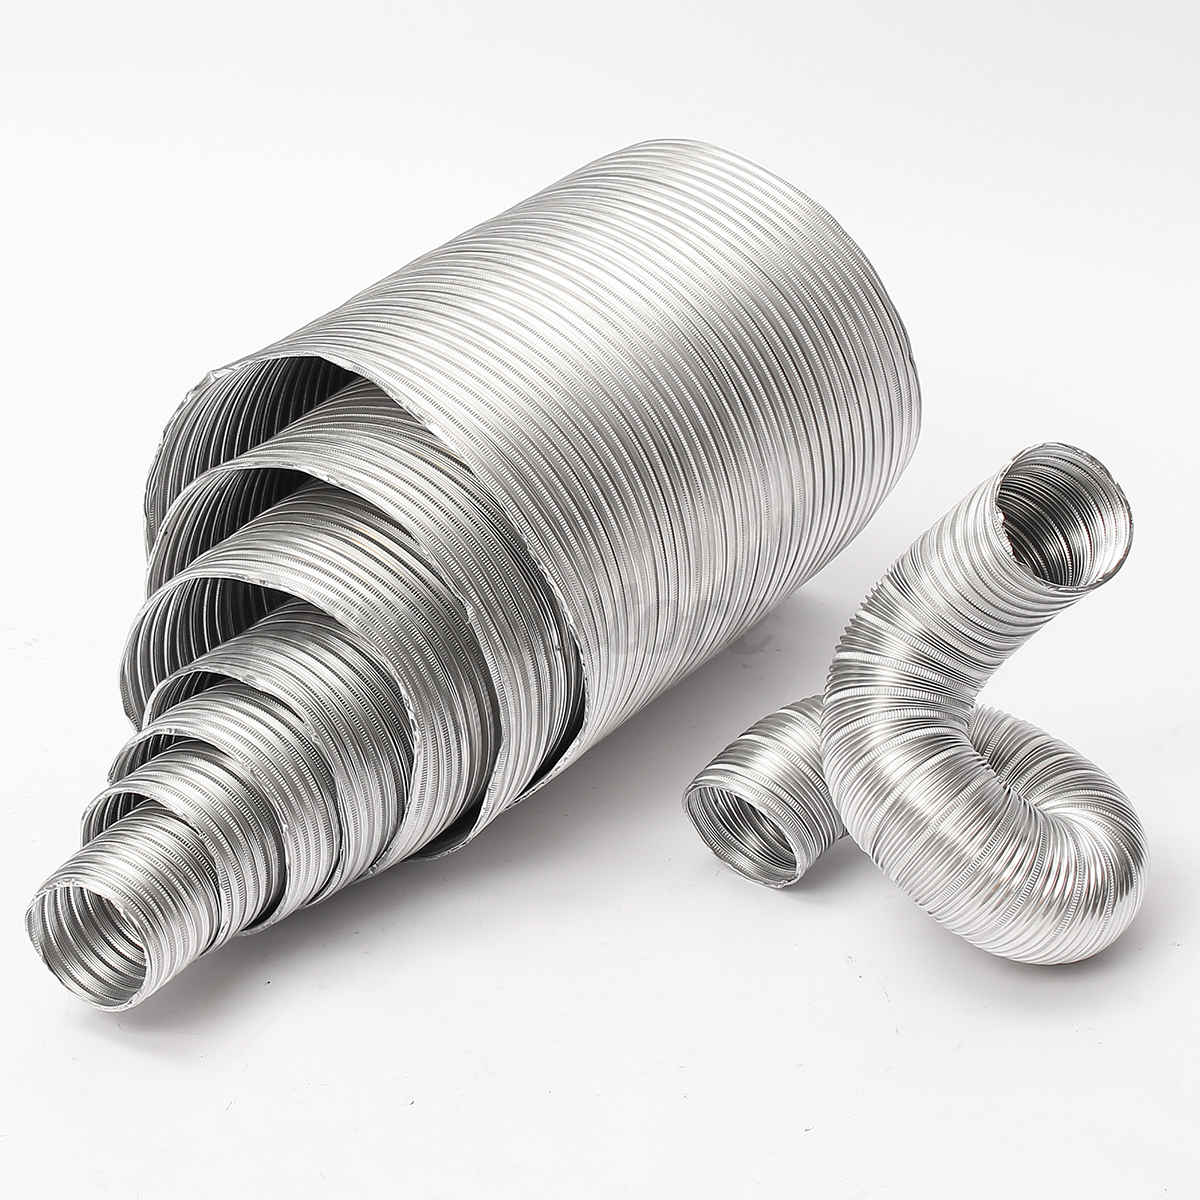 Vent Duct Size : Aluminum flexible exhaust air vent pipe duct ducting tube